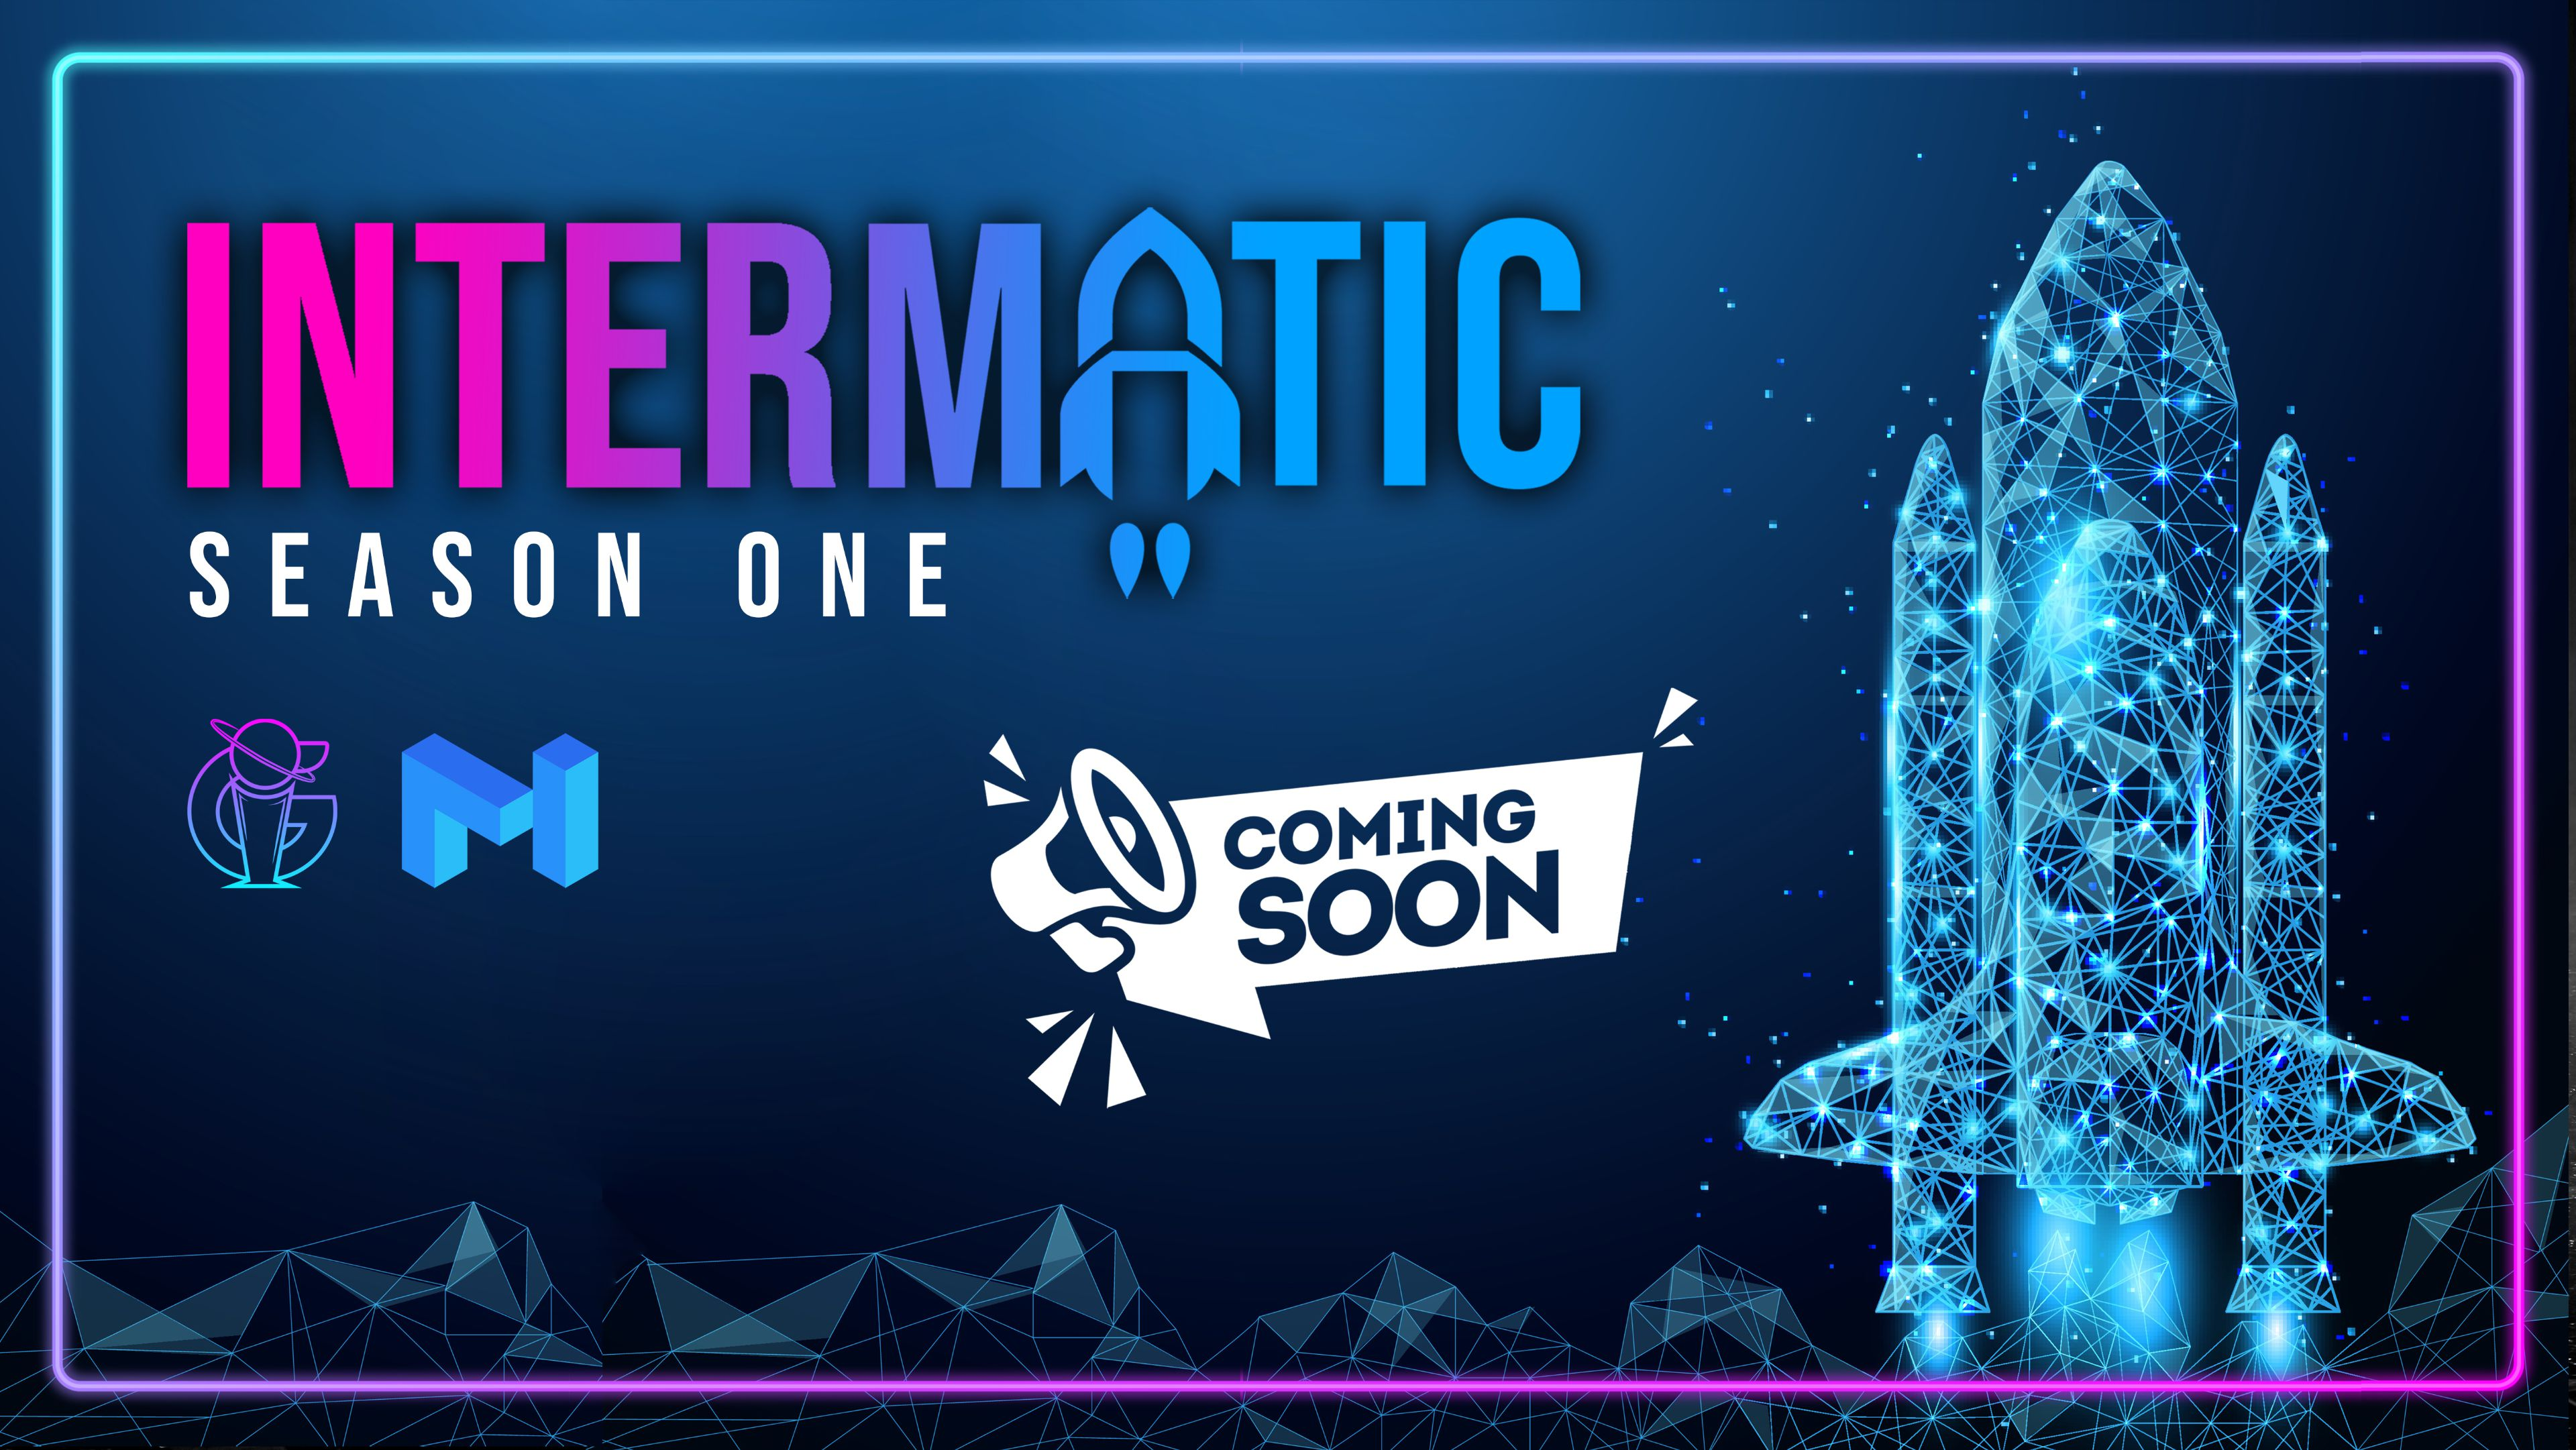 InterMatic Series Season 1 will start on Monday 9 November 2020!